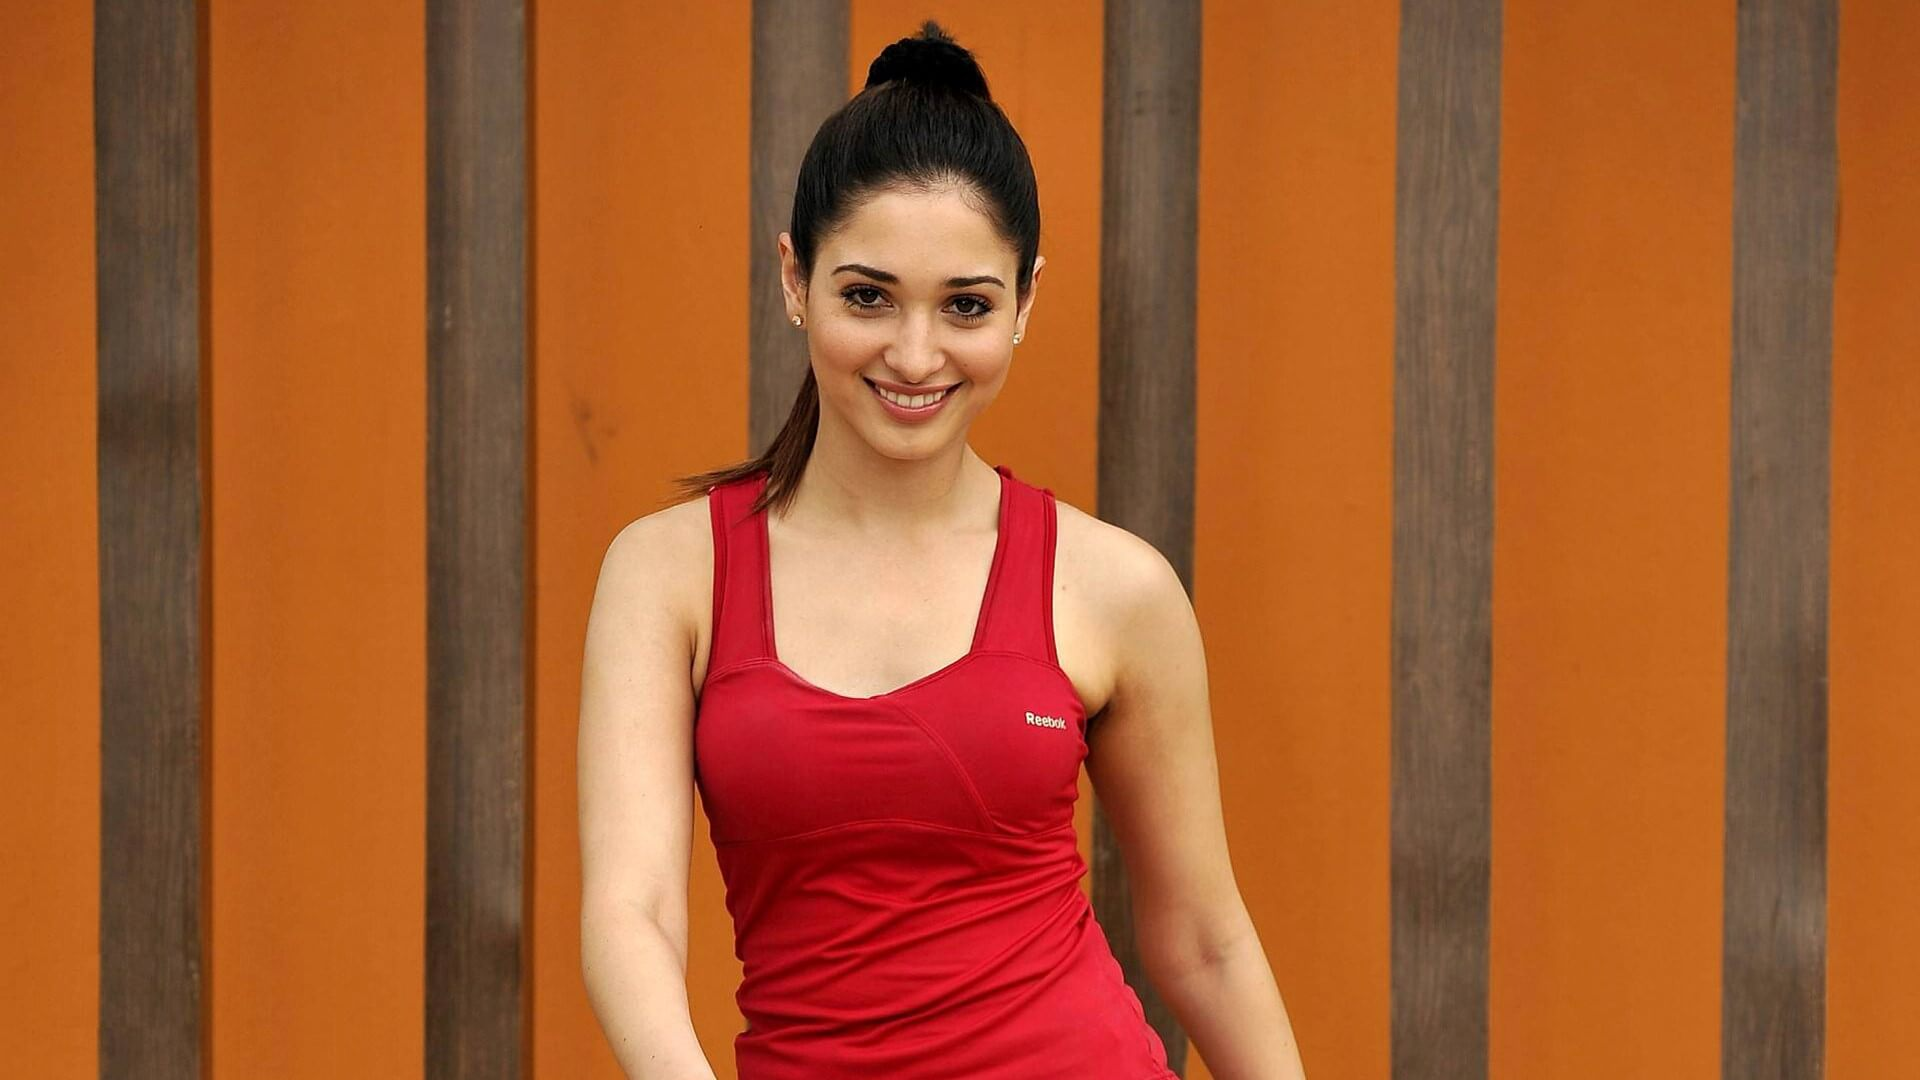 Tamannaah Bhatia Photos(images), Height, Biography, Movies, Date Of Birth, House, Details, Marriage, Boyfriend, Net Worth, Education, Instagram, Facebook, Twitter, Wiki, Imdb, Youtube (52)